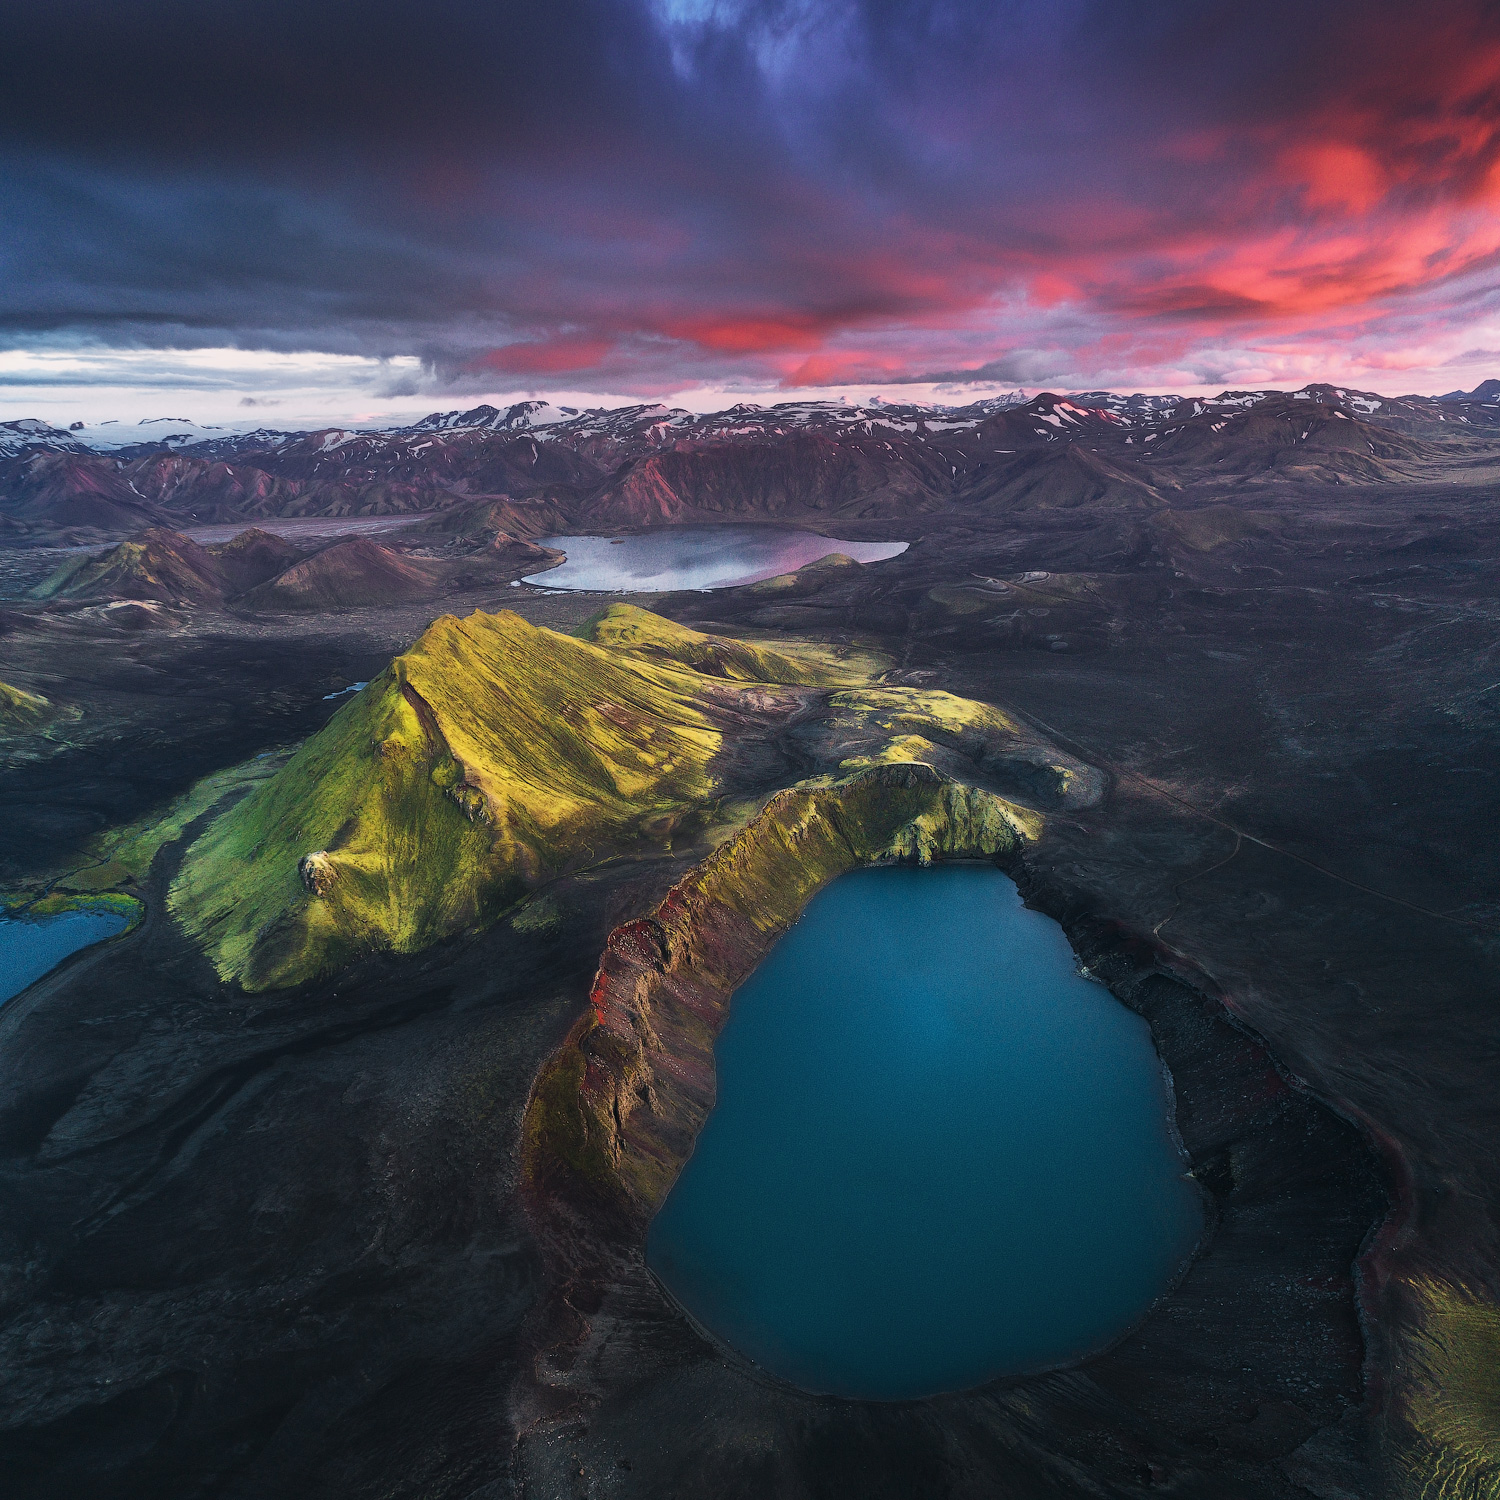 The beautiful Bláhylur crater captured from above so you can marvel at its brilliant and beautiful blue waters in full.